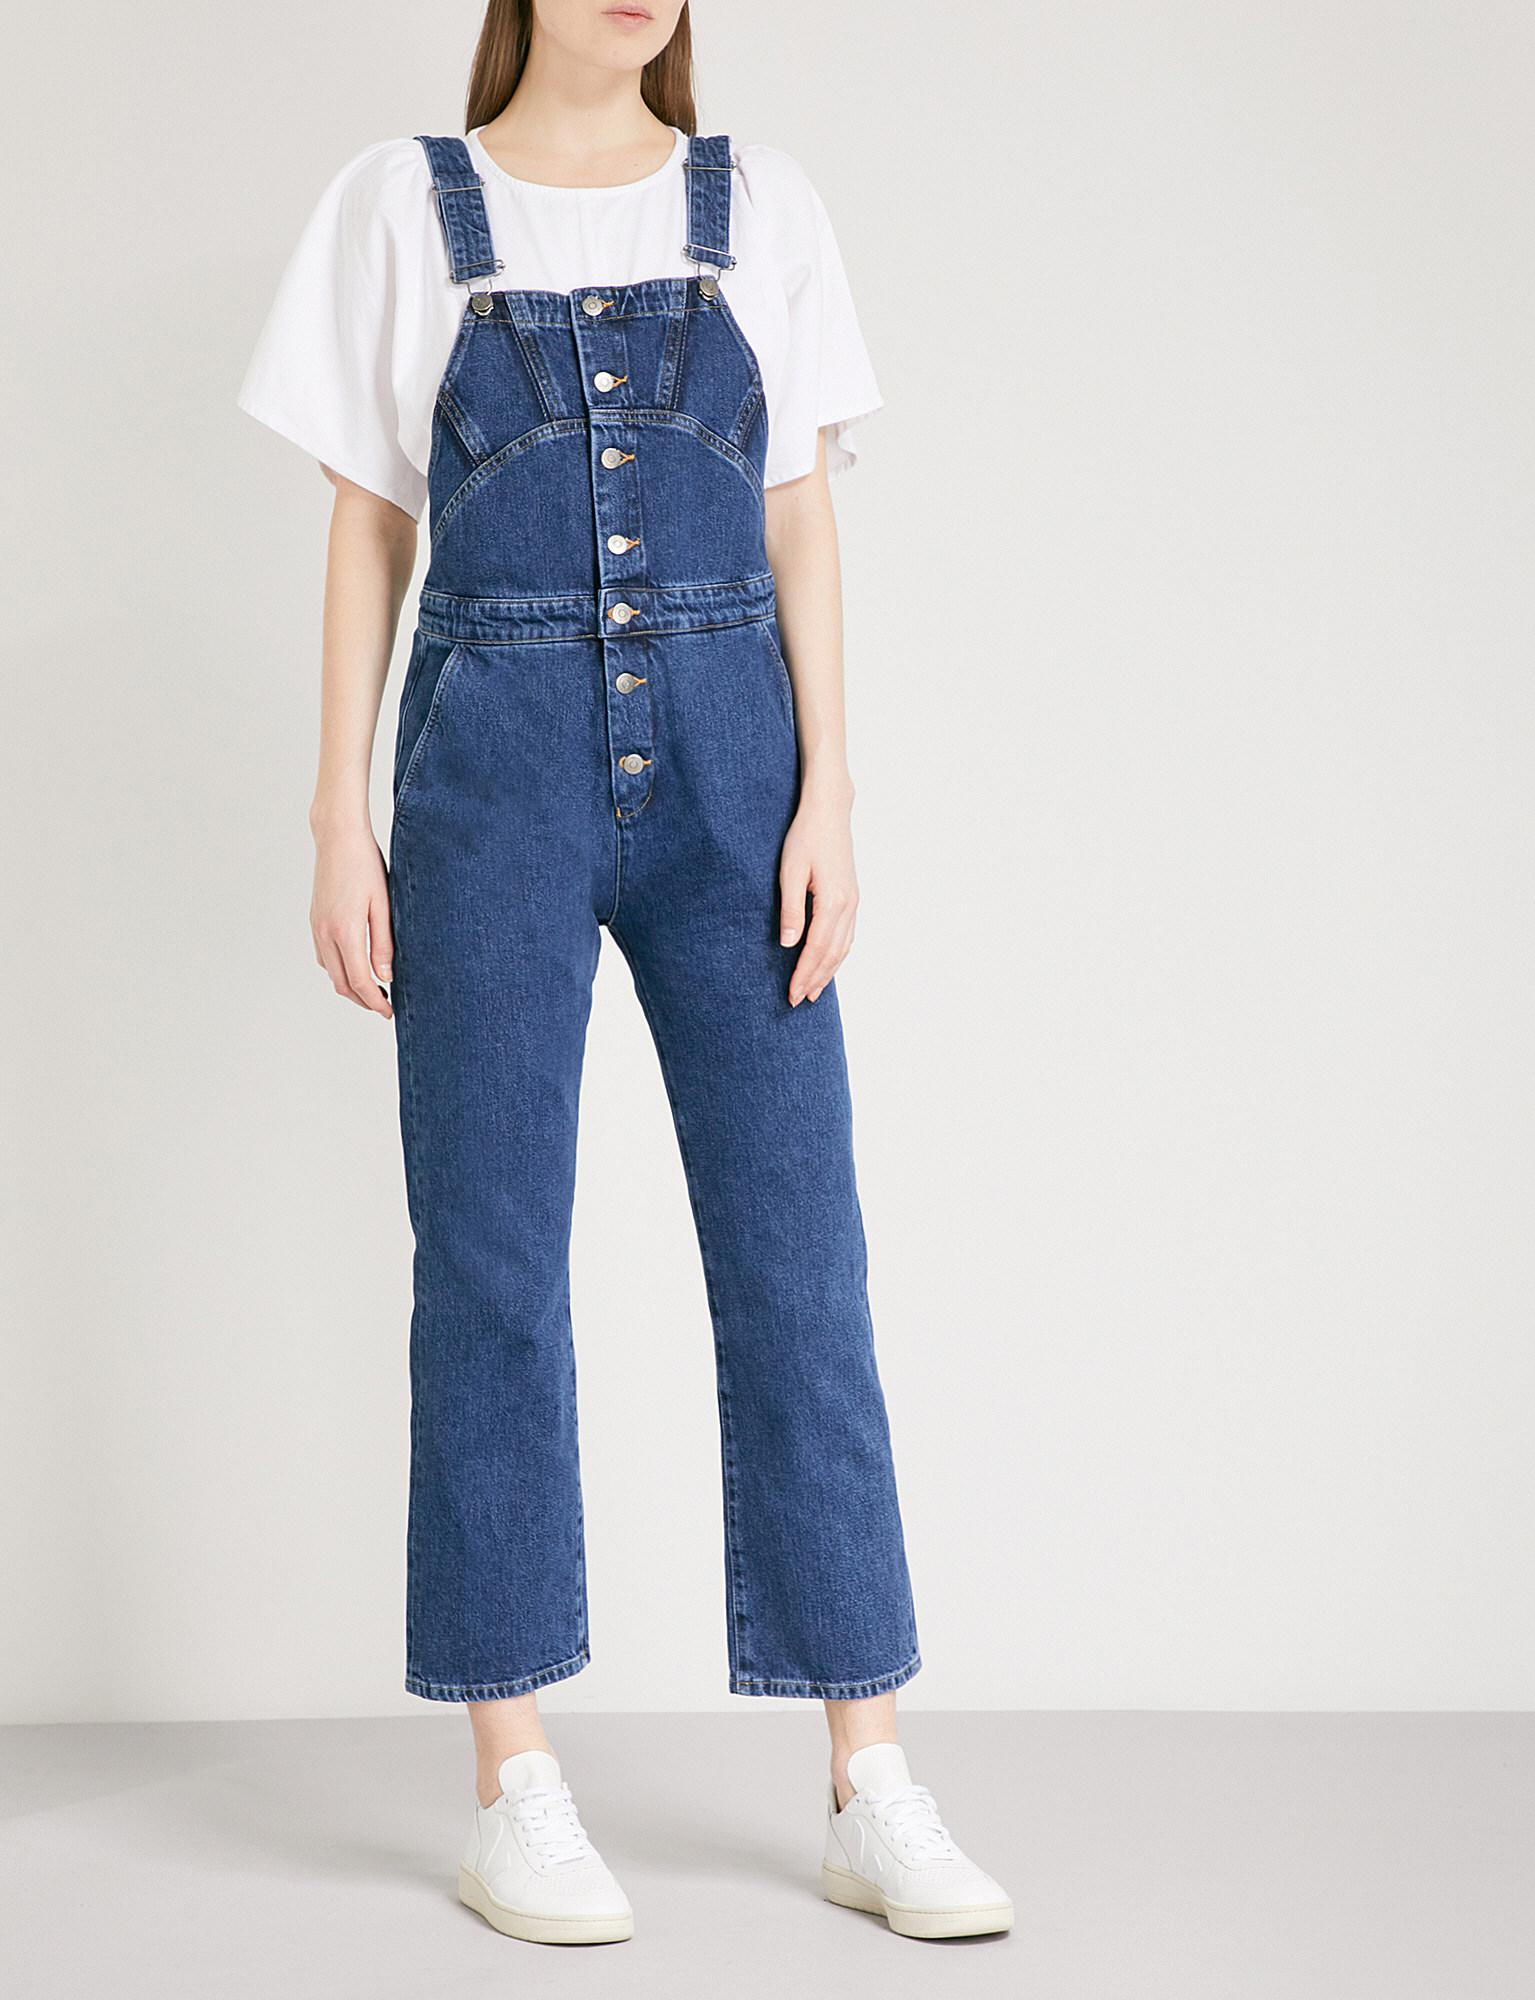 ea7b5d87e2b Lyst - Mih Jeans Tribe Slim-fit Denim Dungarees in Blue